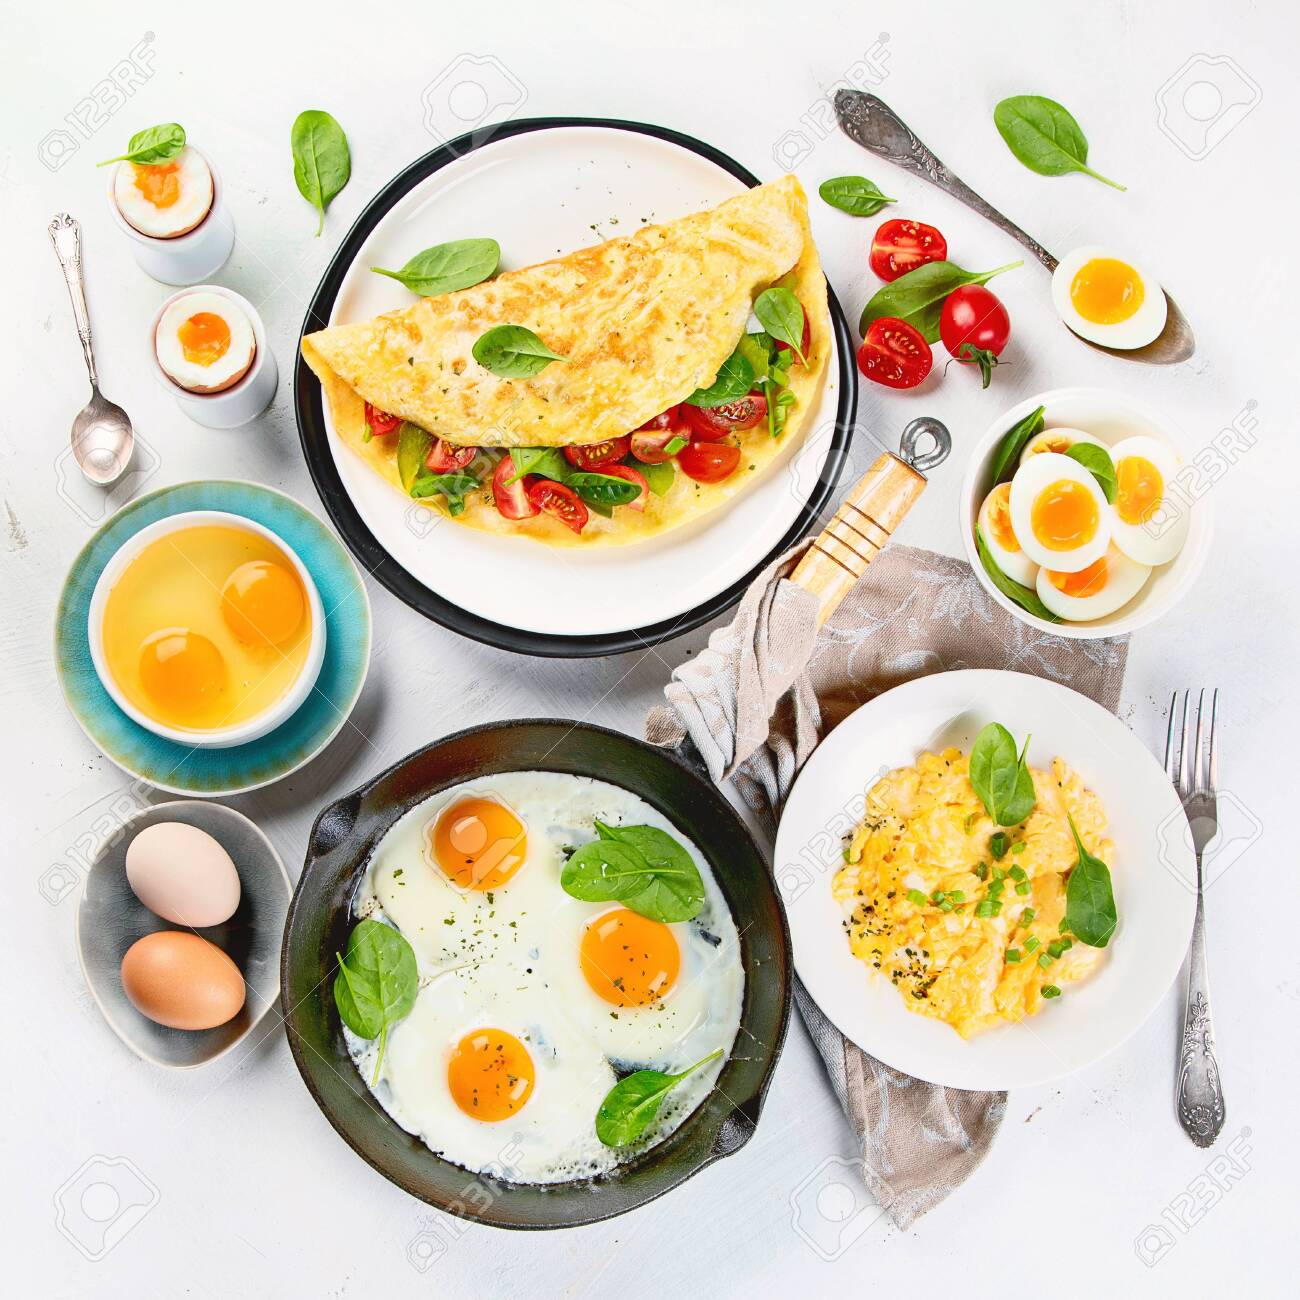 Cooked egg dishes for breakfast. Tradidional Ways to Cook an Egg. - 137893052